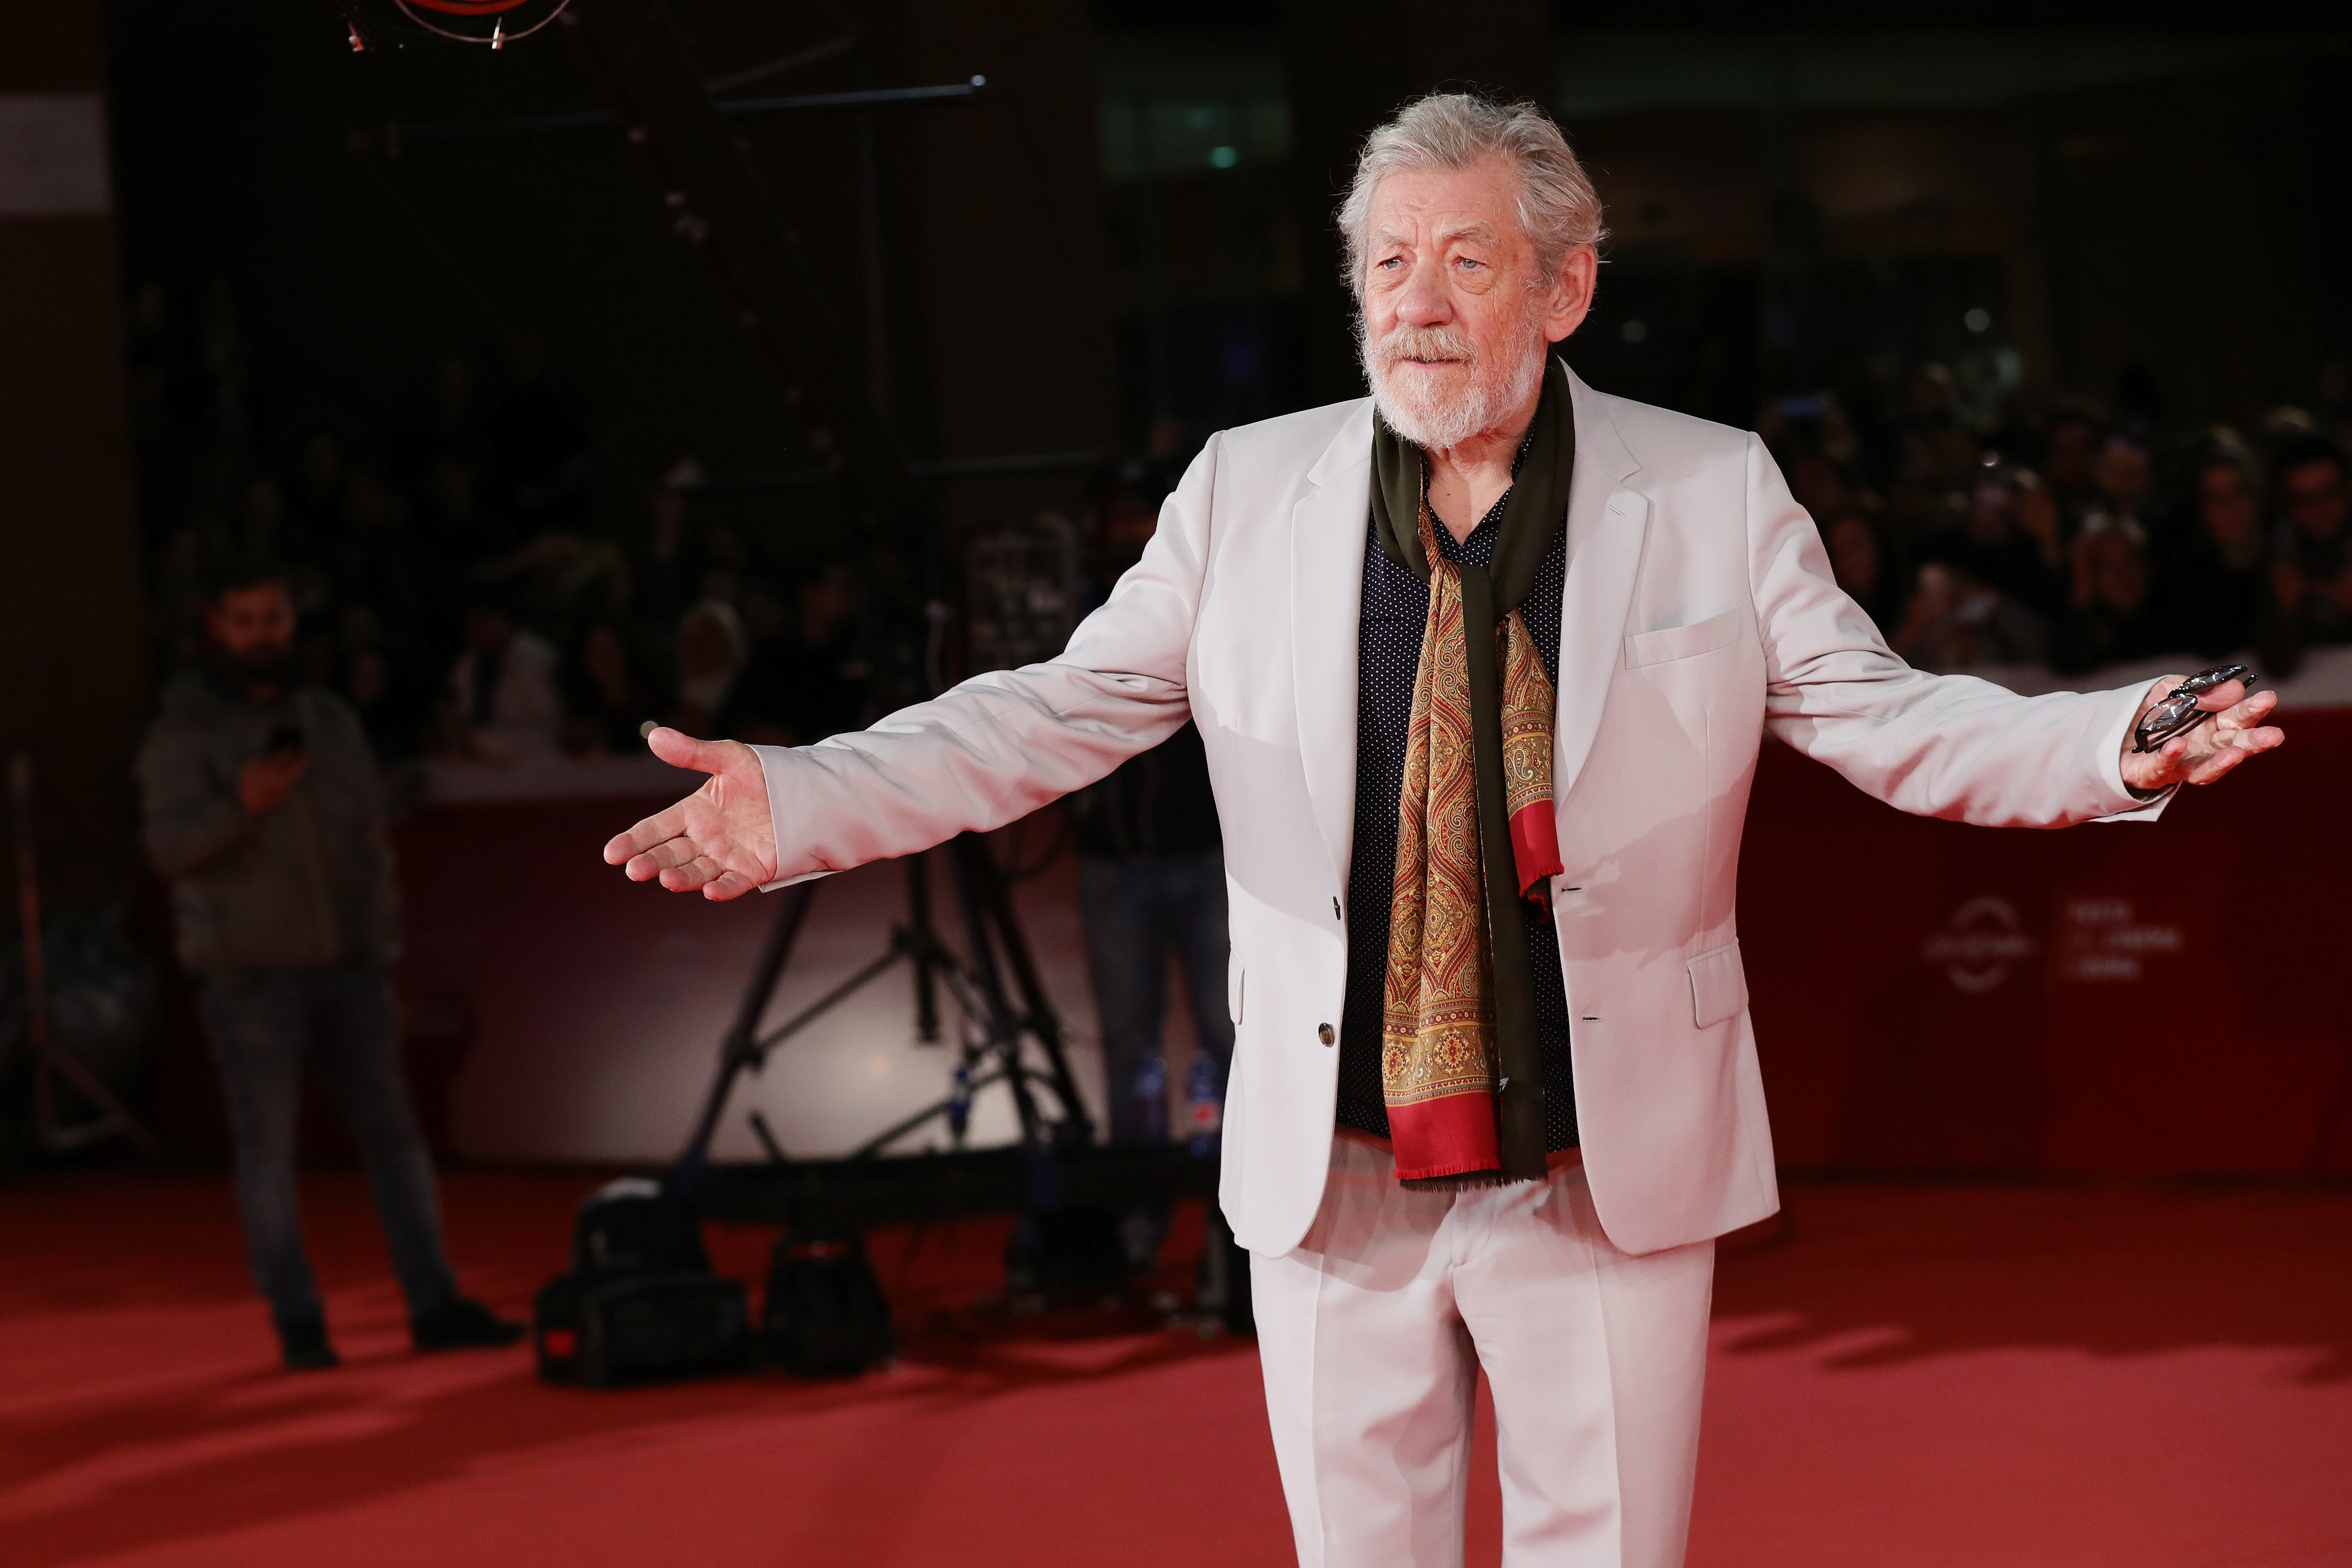 Ian McKellen walks a red carpet for 'Ian McKellen: Playing The Part' during the 12th Rome Film Fest at Auditorium Parco Della Musica on November 1, 2017 in Rome, Italy.